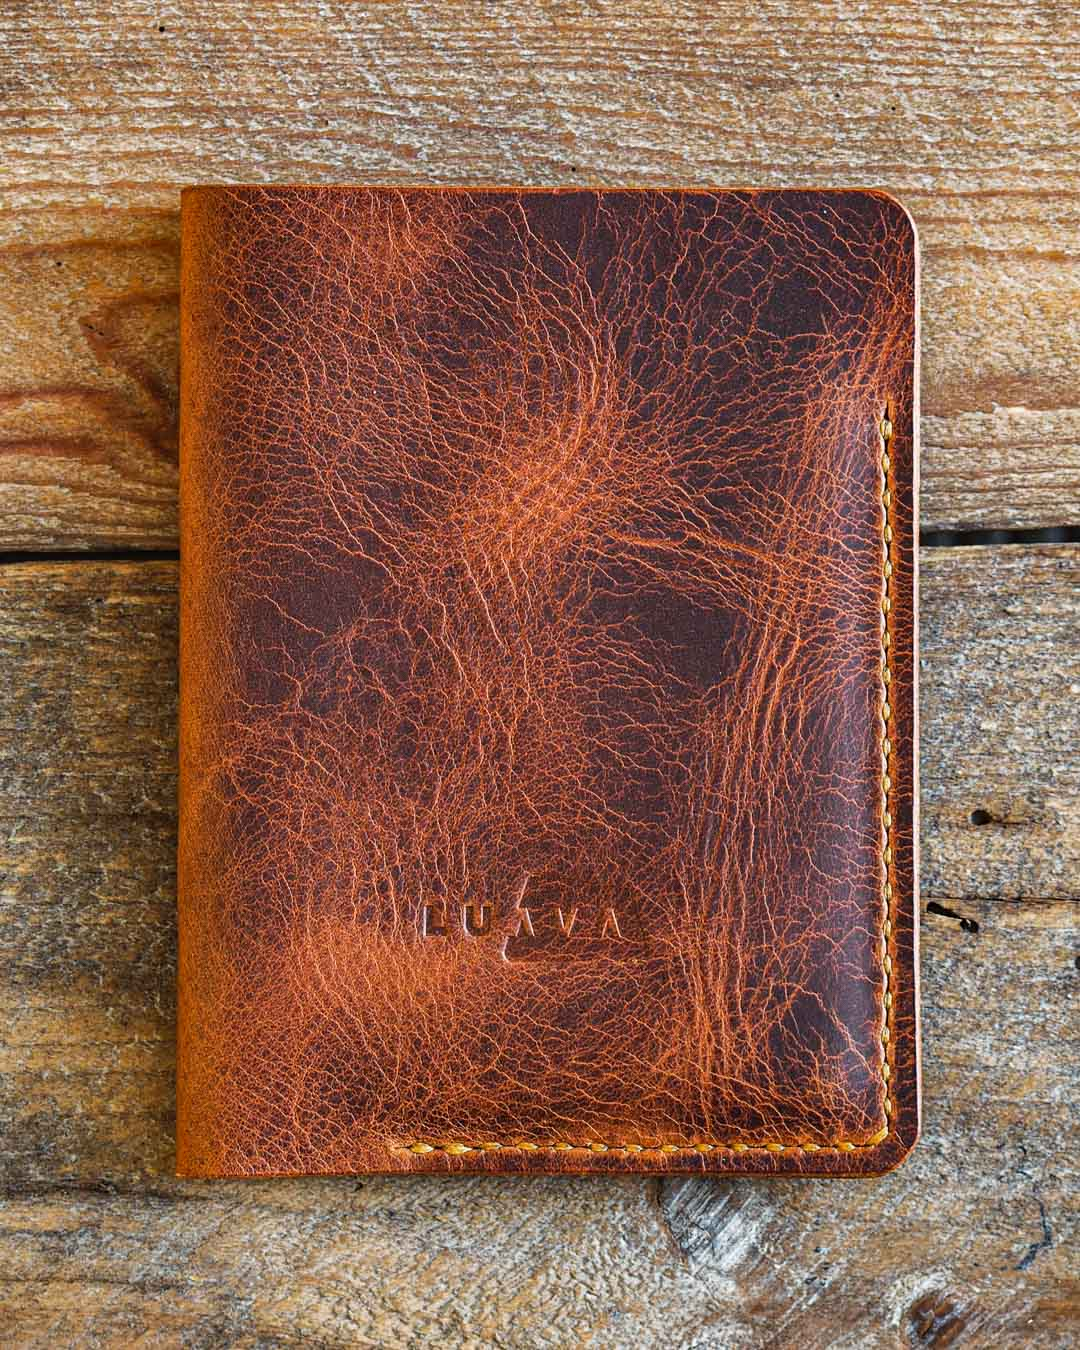 Luava handcrafted leather passport cover badalassi carlo wax cognac